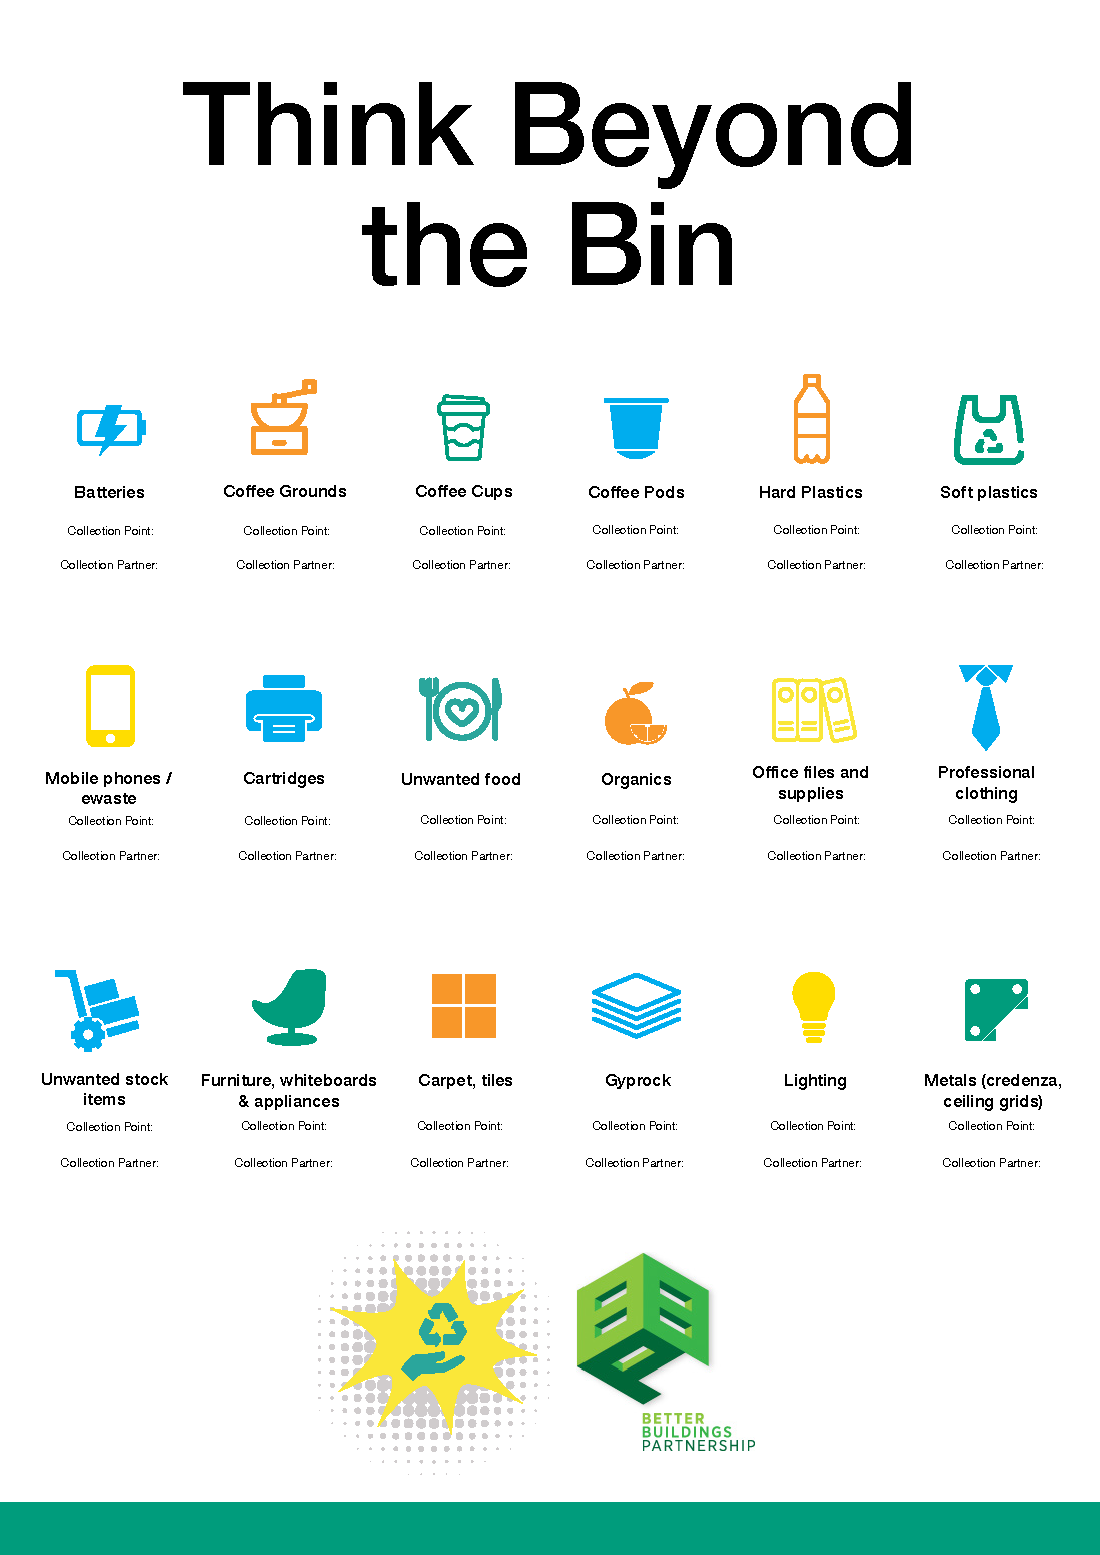 Think Beyond the Bin - Campaign